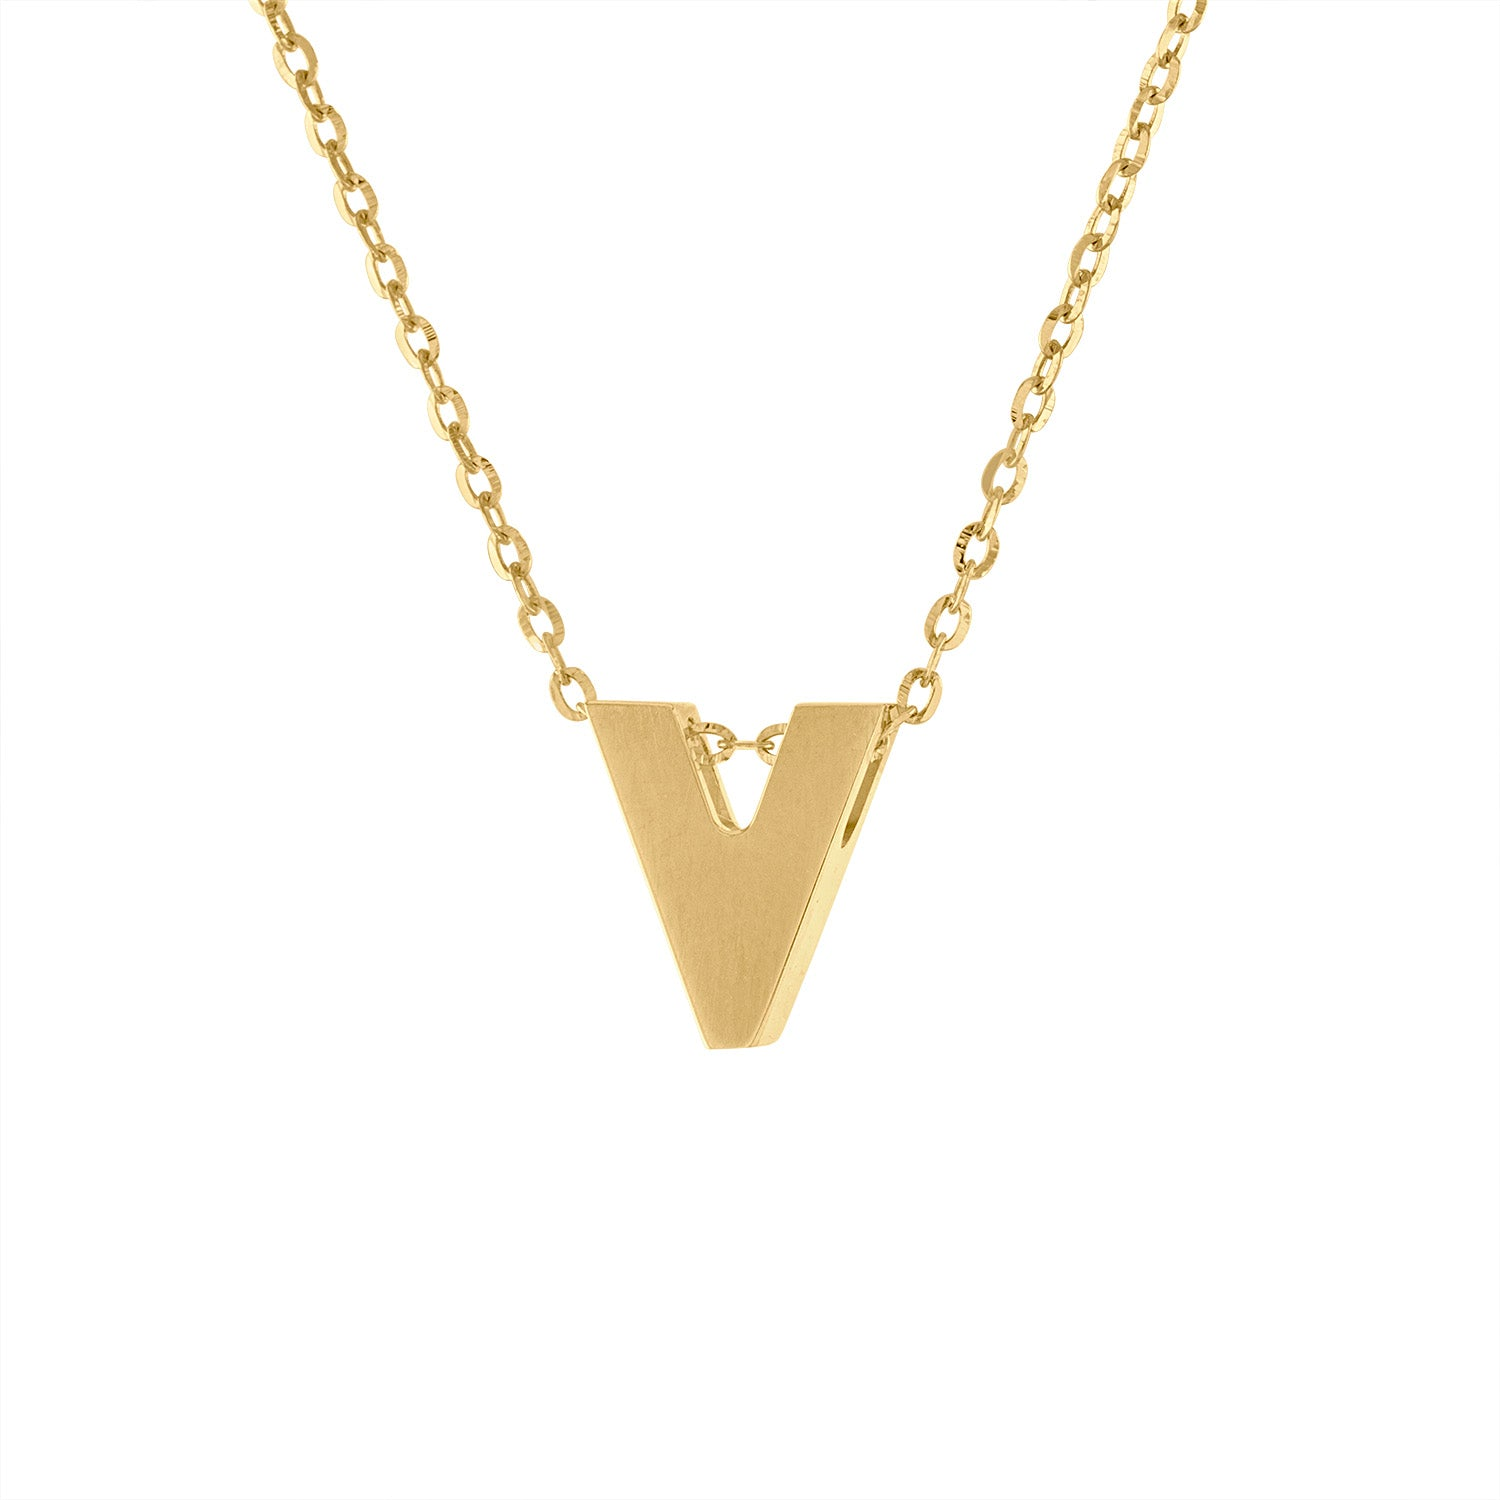 14k Yellow Gold plain initial V necklace